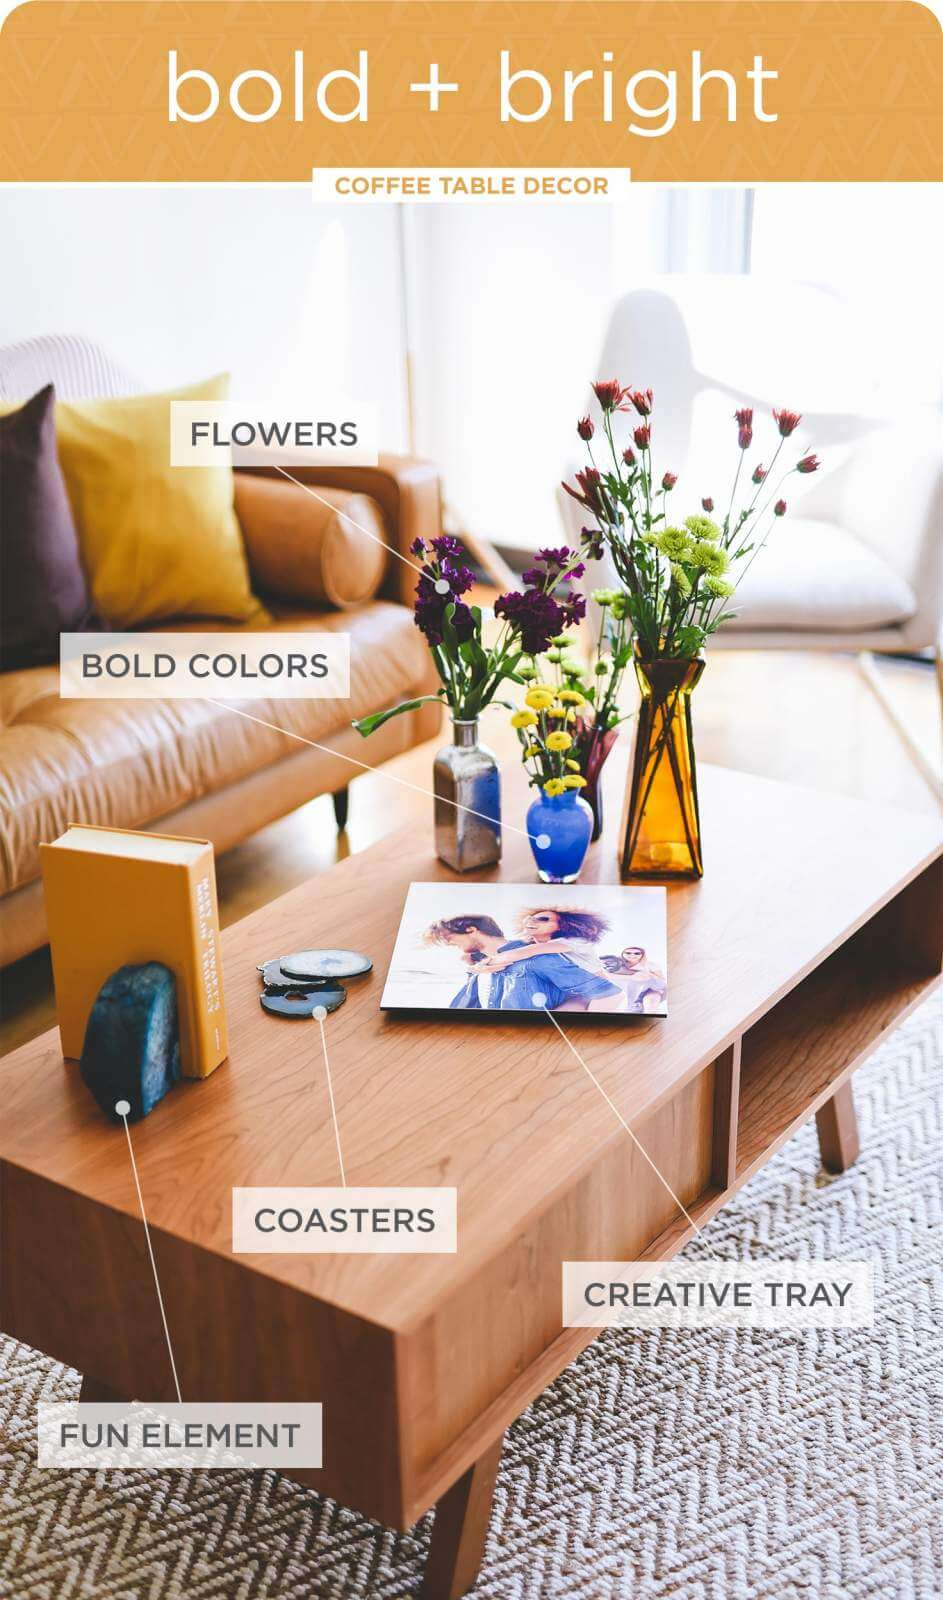 Unique Coffee Table Decor 15 Tips For A Unique Coffee Table Decor And Photos Shutterfly